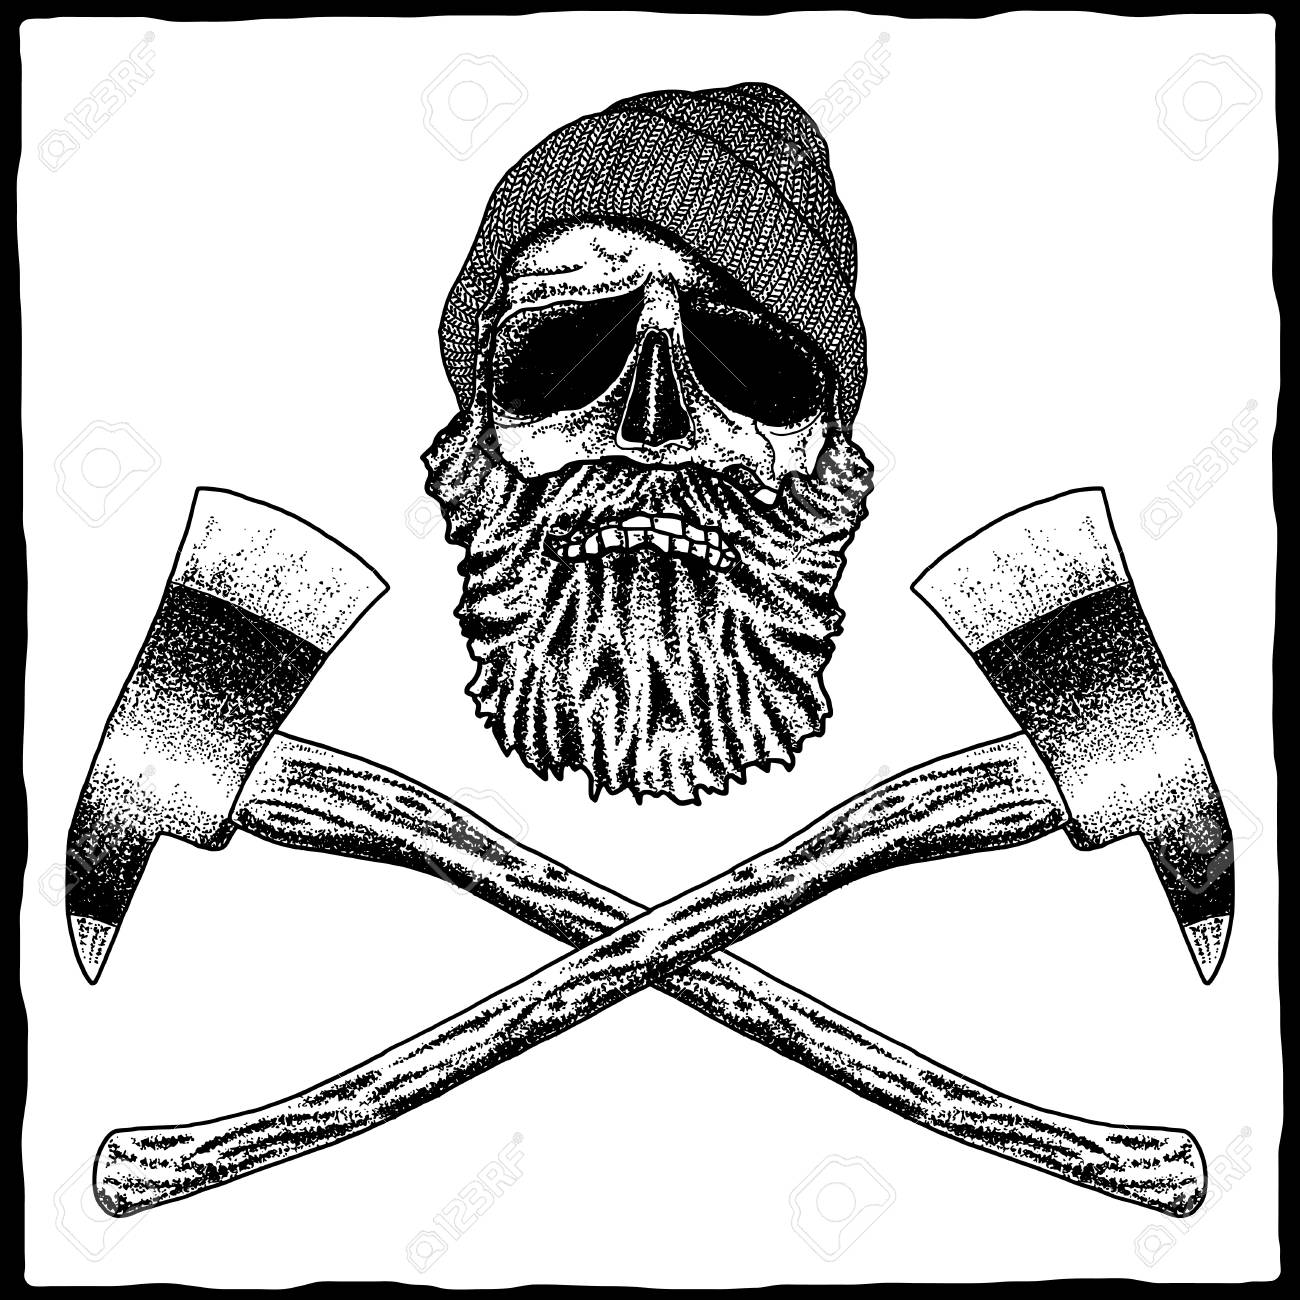 Lumberjack Effective Poster With Skull In Hat And Beard Vector Illustration Stock